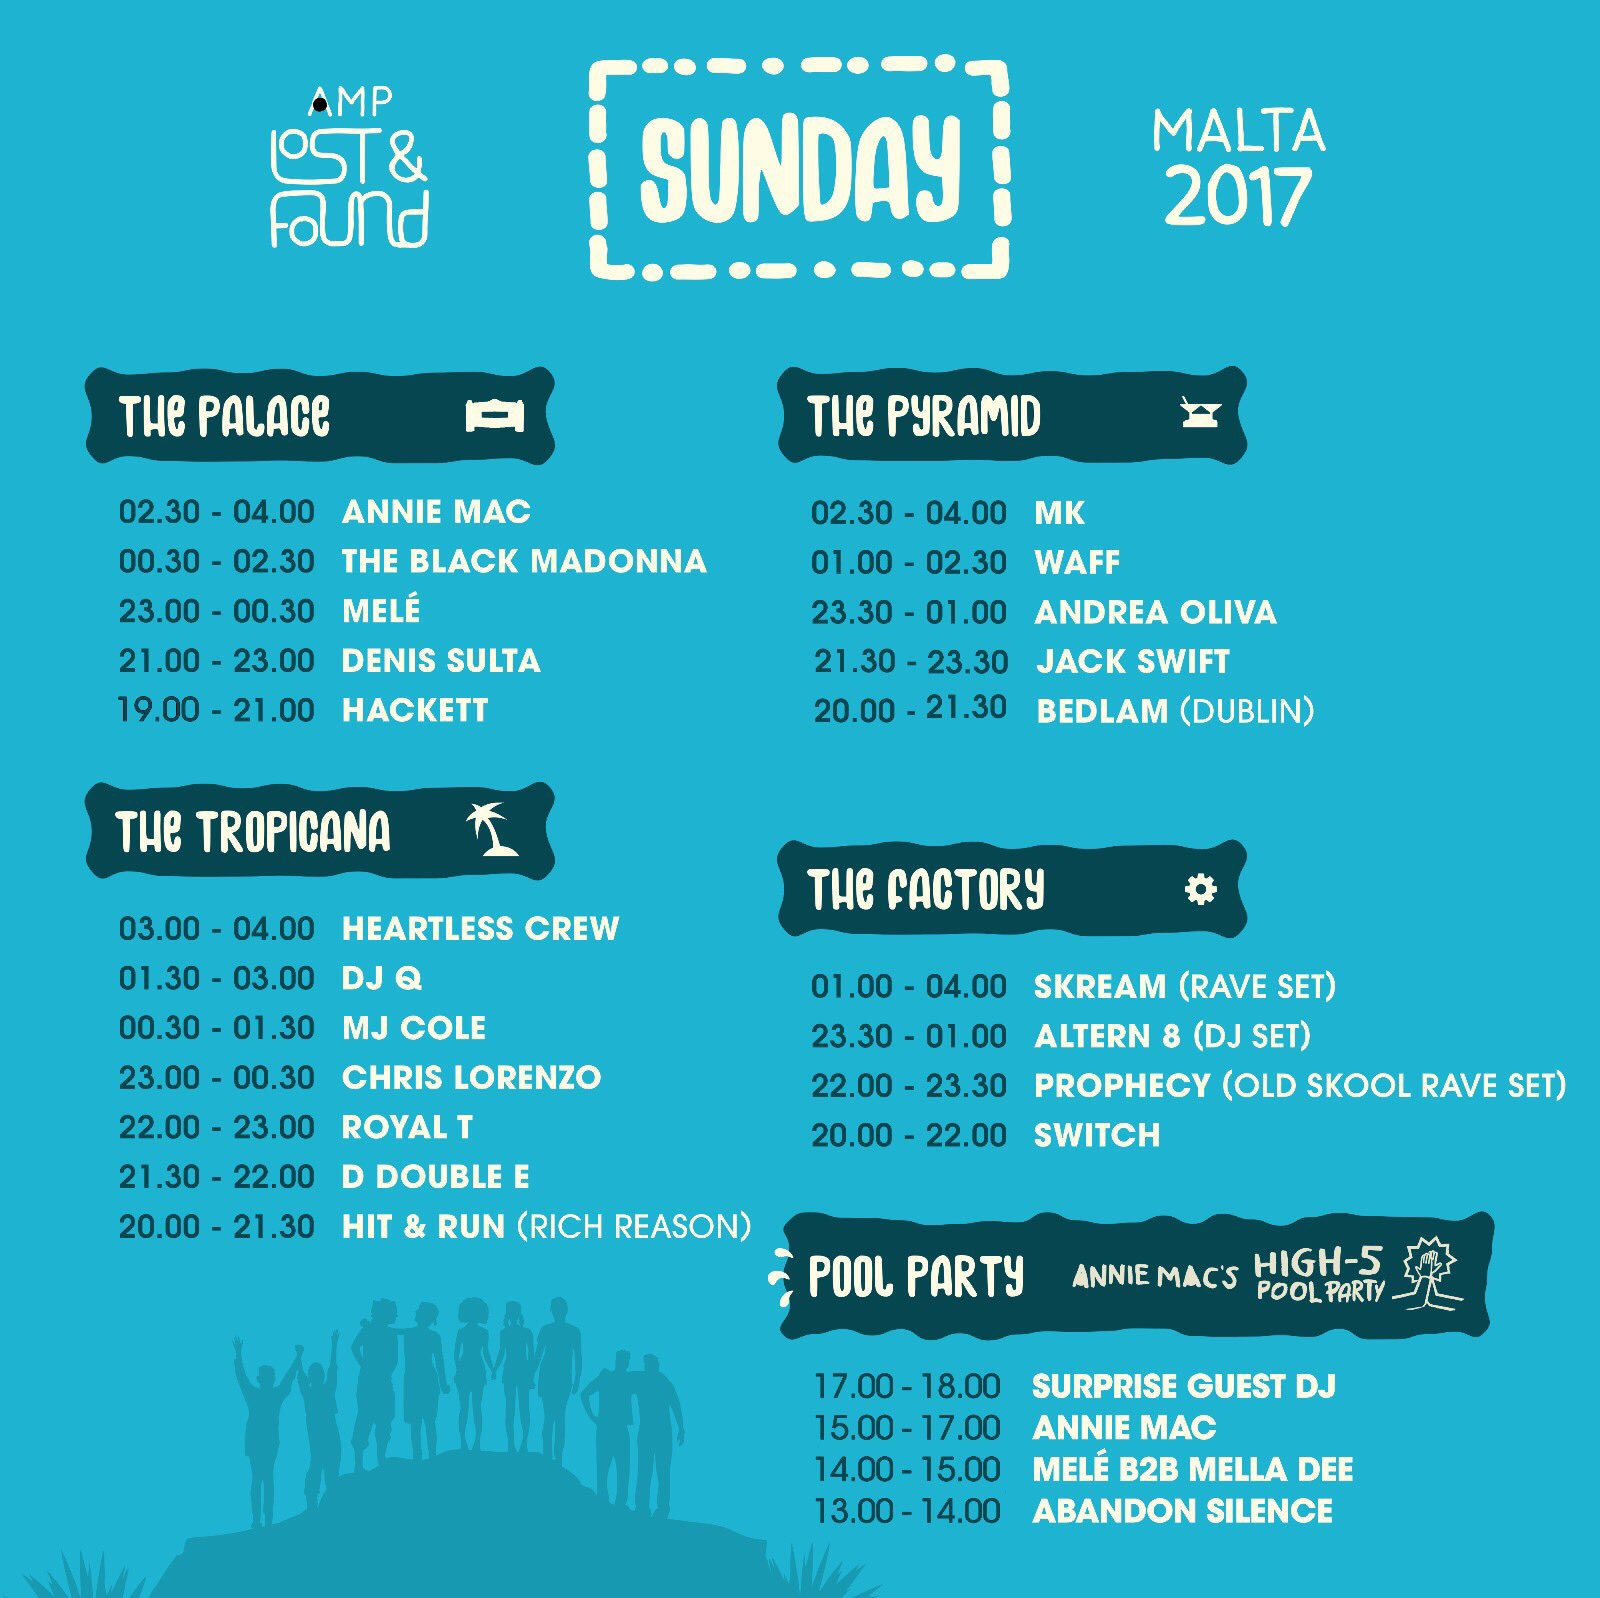 Set times for the FINAL day of AMP Lost & Found 2017 🌅🌴🎉 #AMPLostandFound https://t.co/BqhZ5agITC